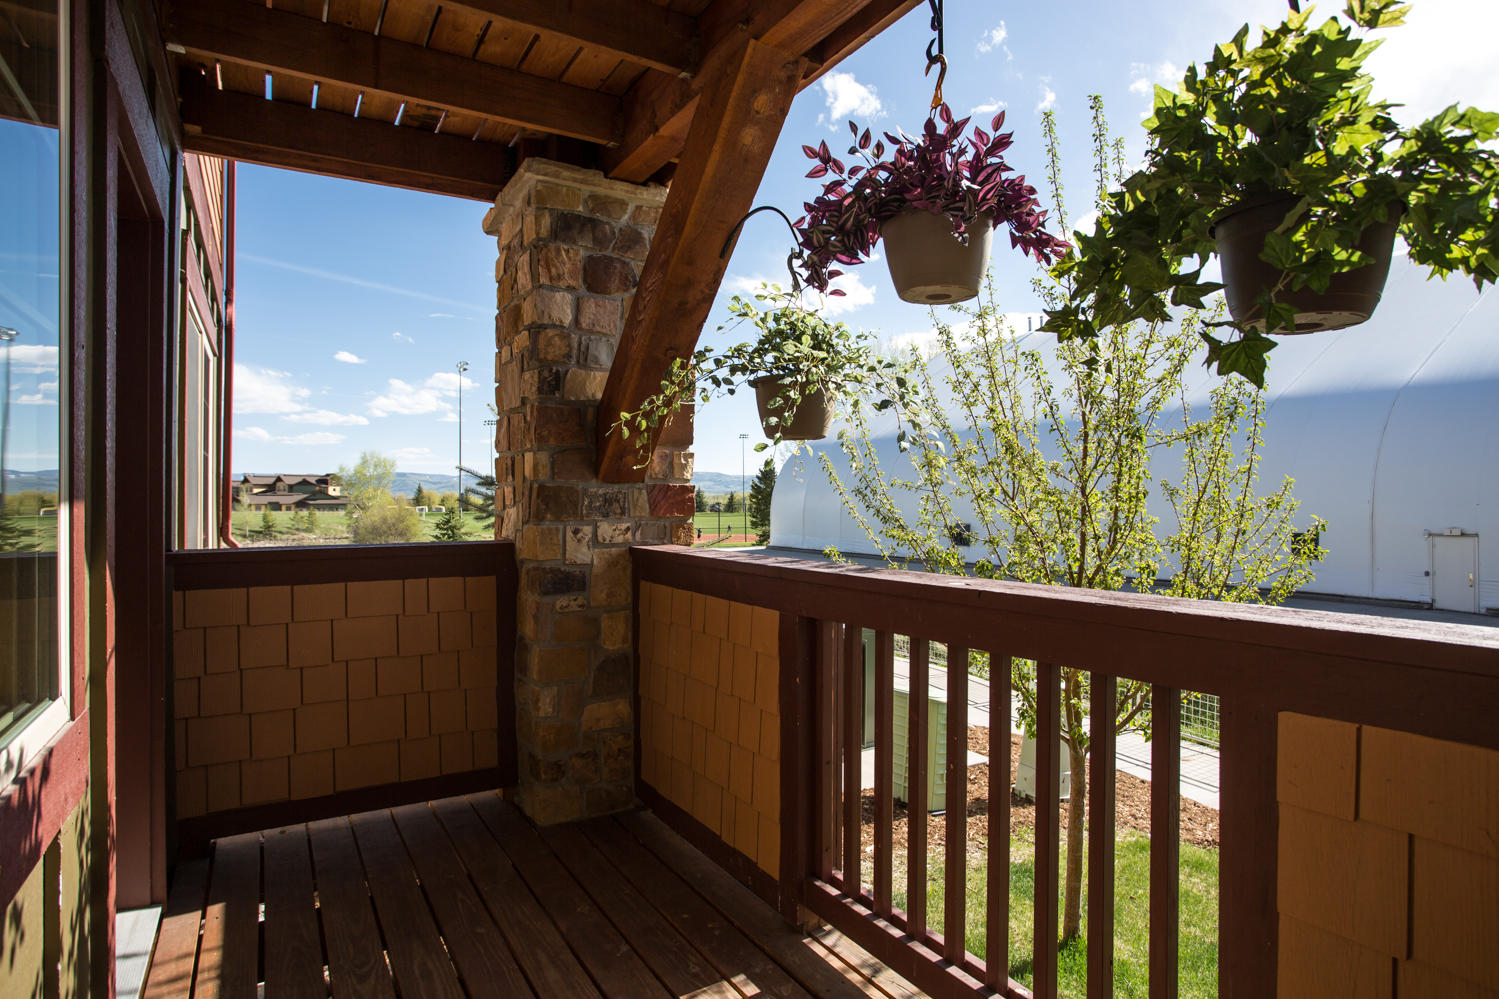 2525 Cattle Kate Cir #4116, Steamboat Springs, CO 80487 | Trulia